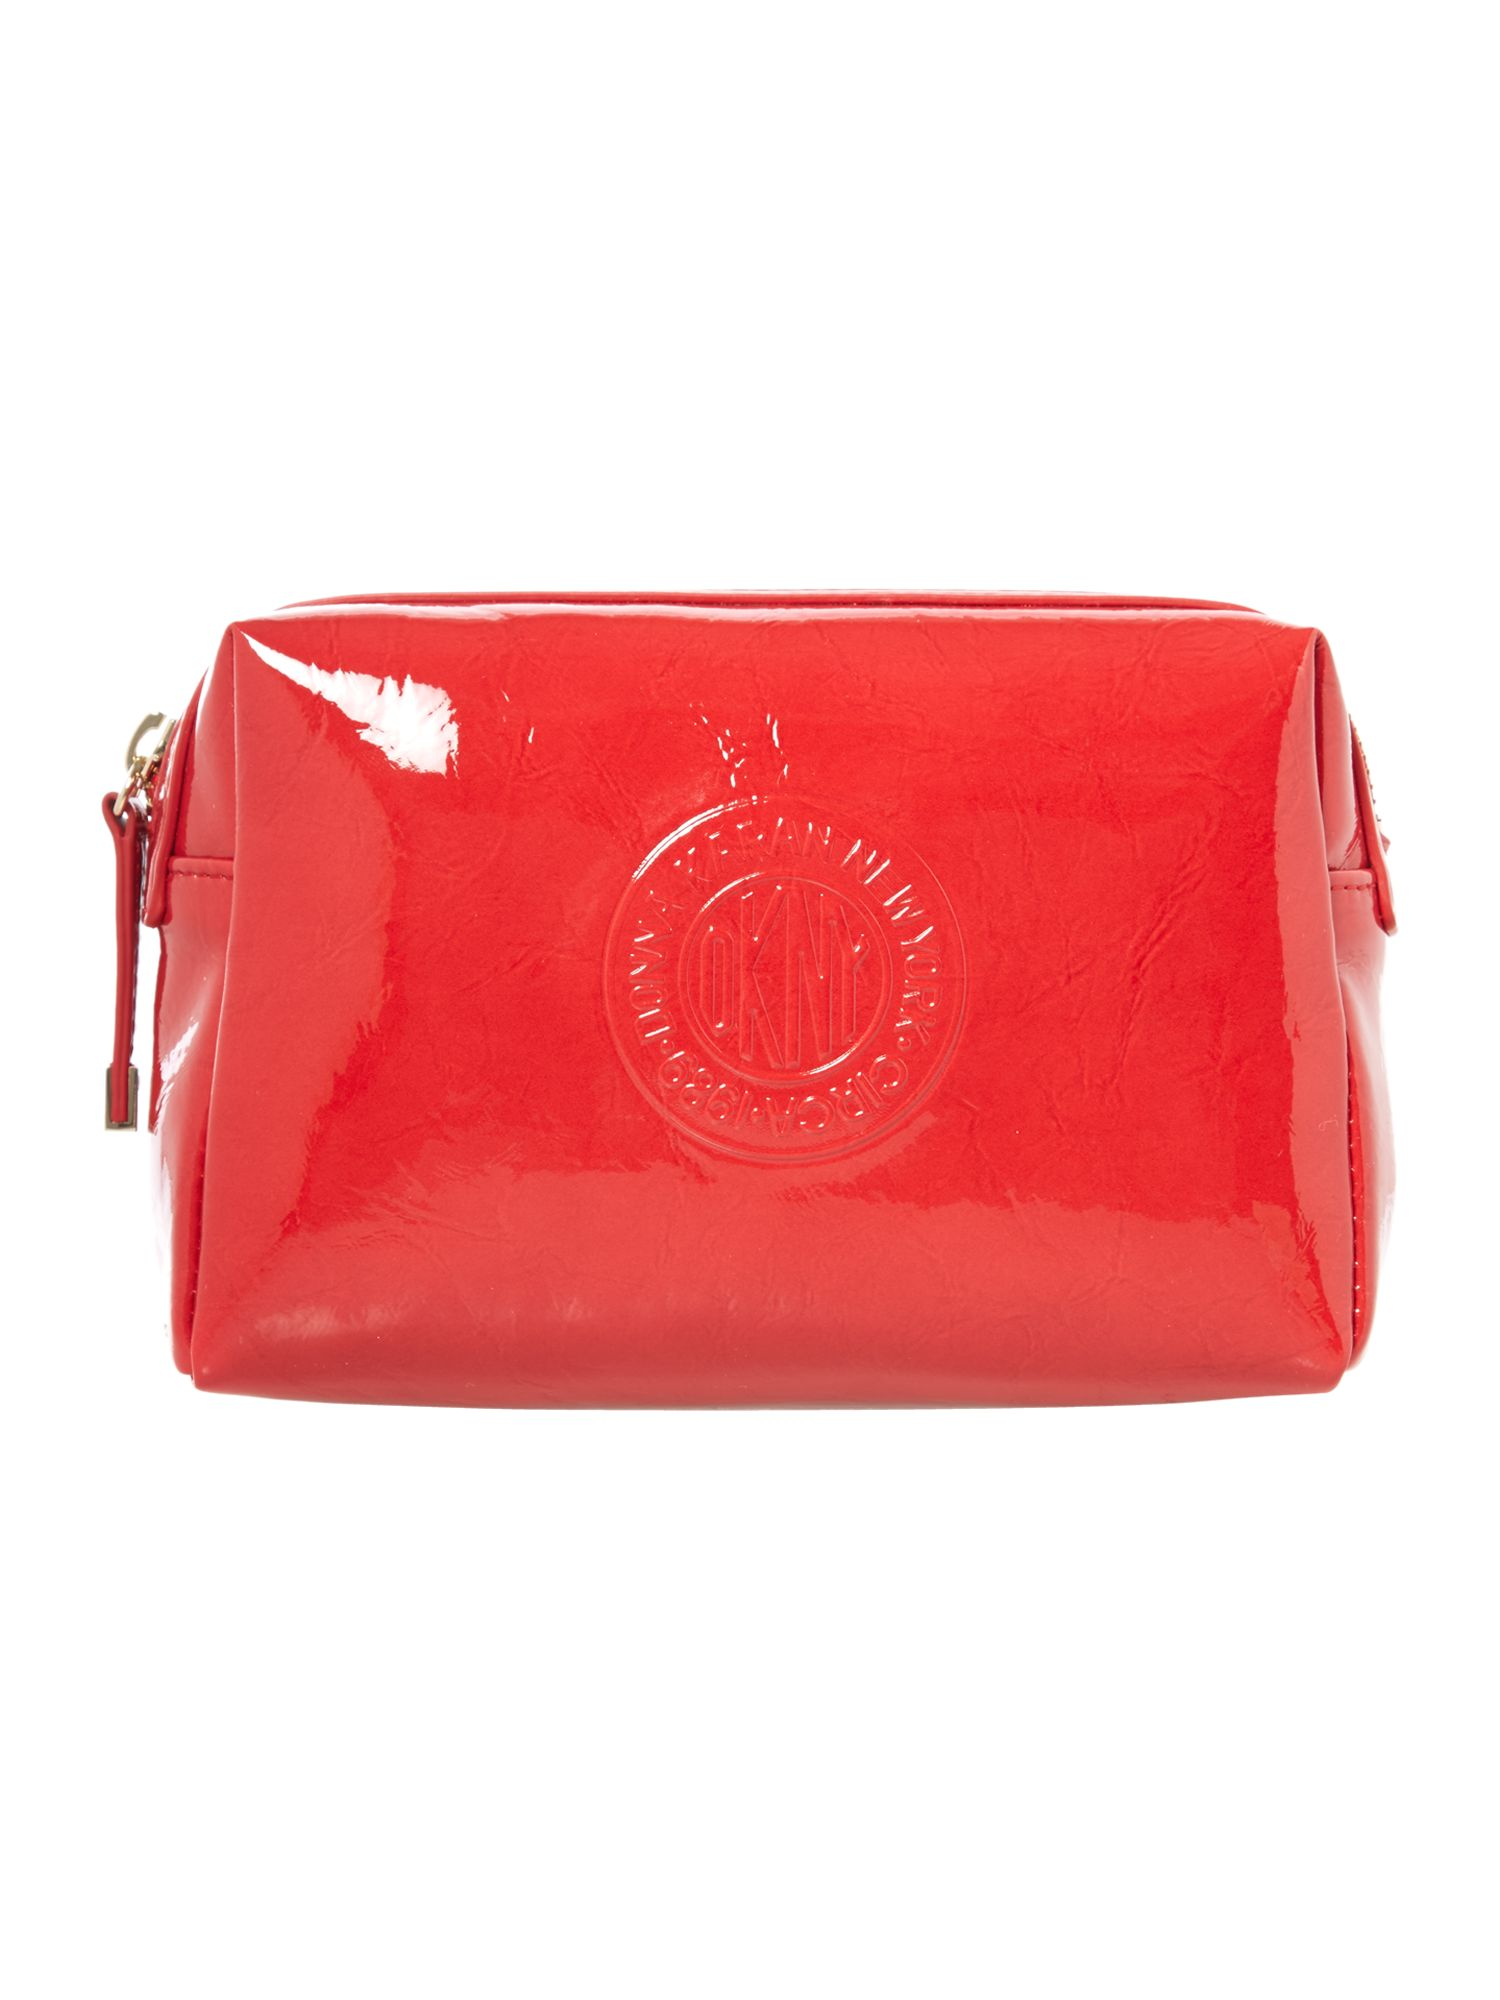 Patent logo red cosmetic bag